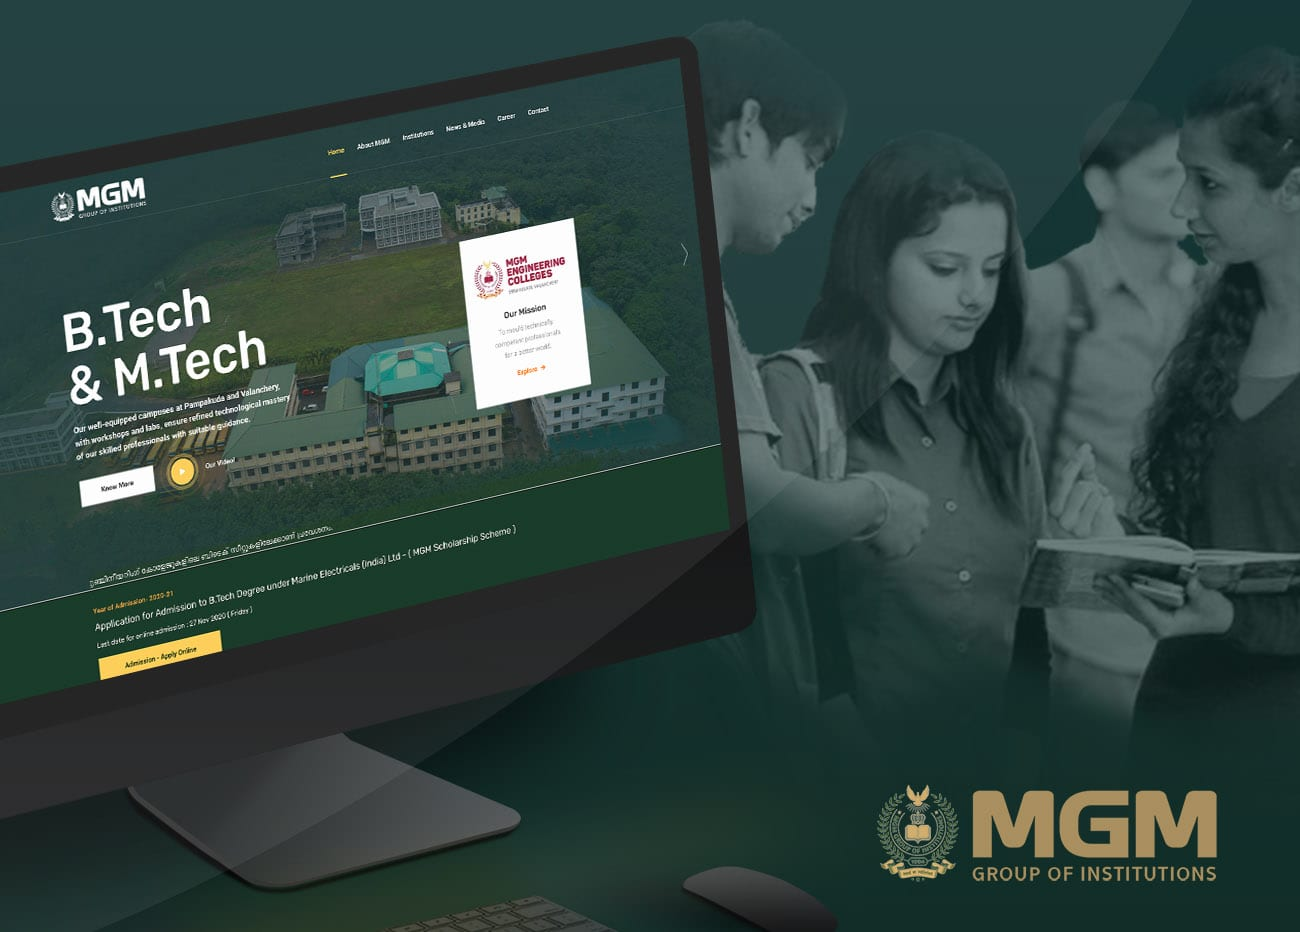 MGM Group of Institutions